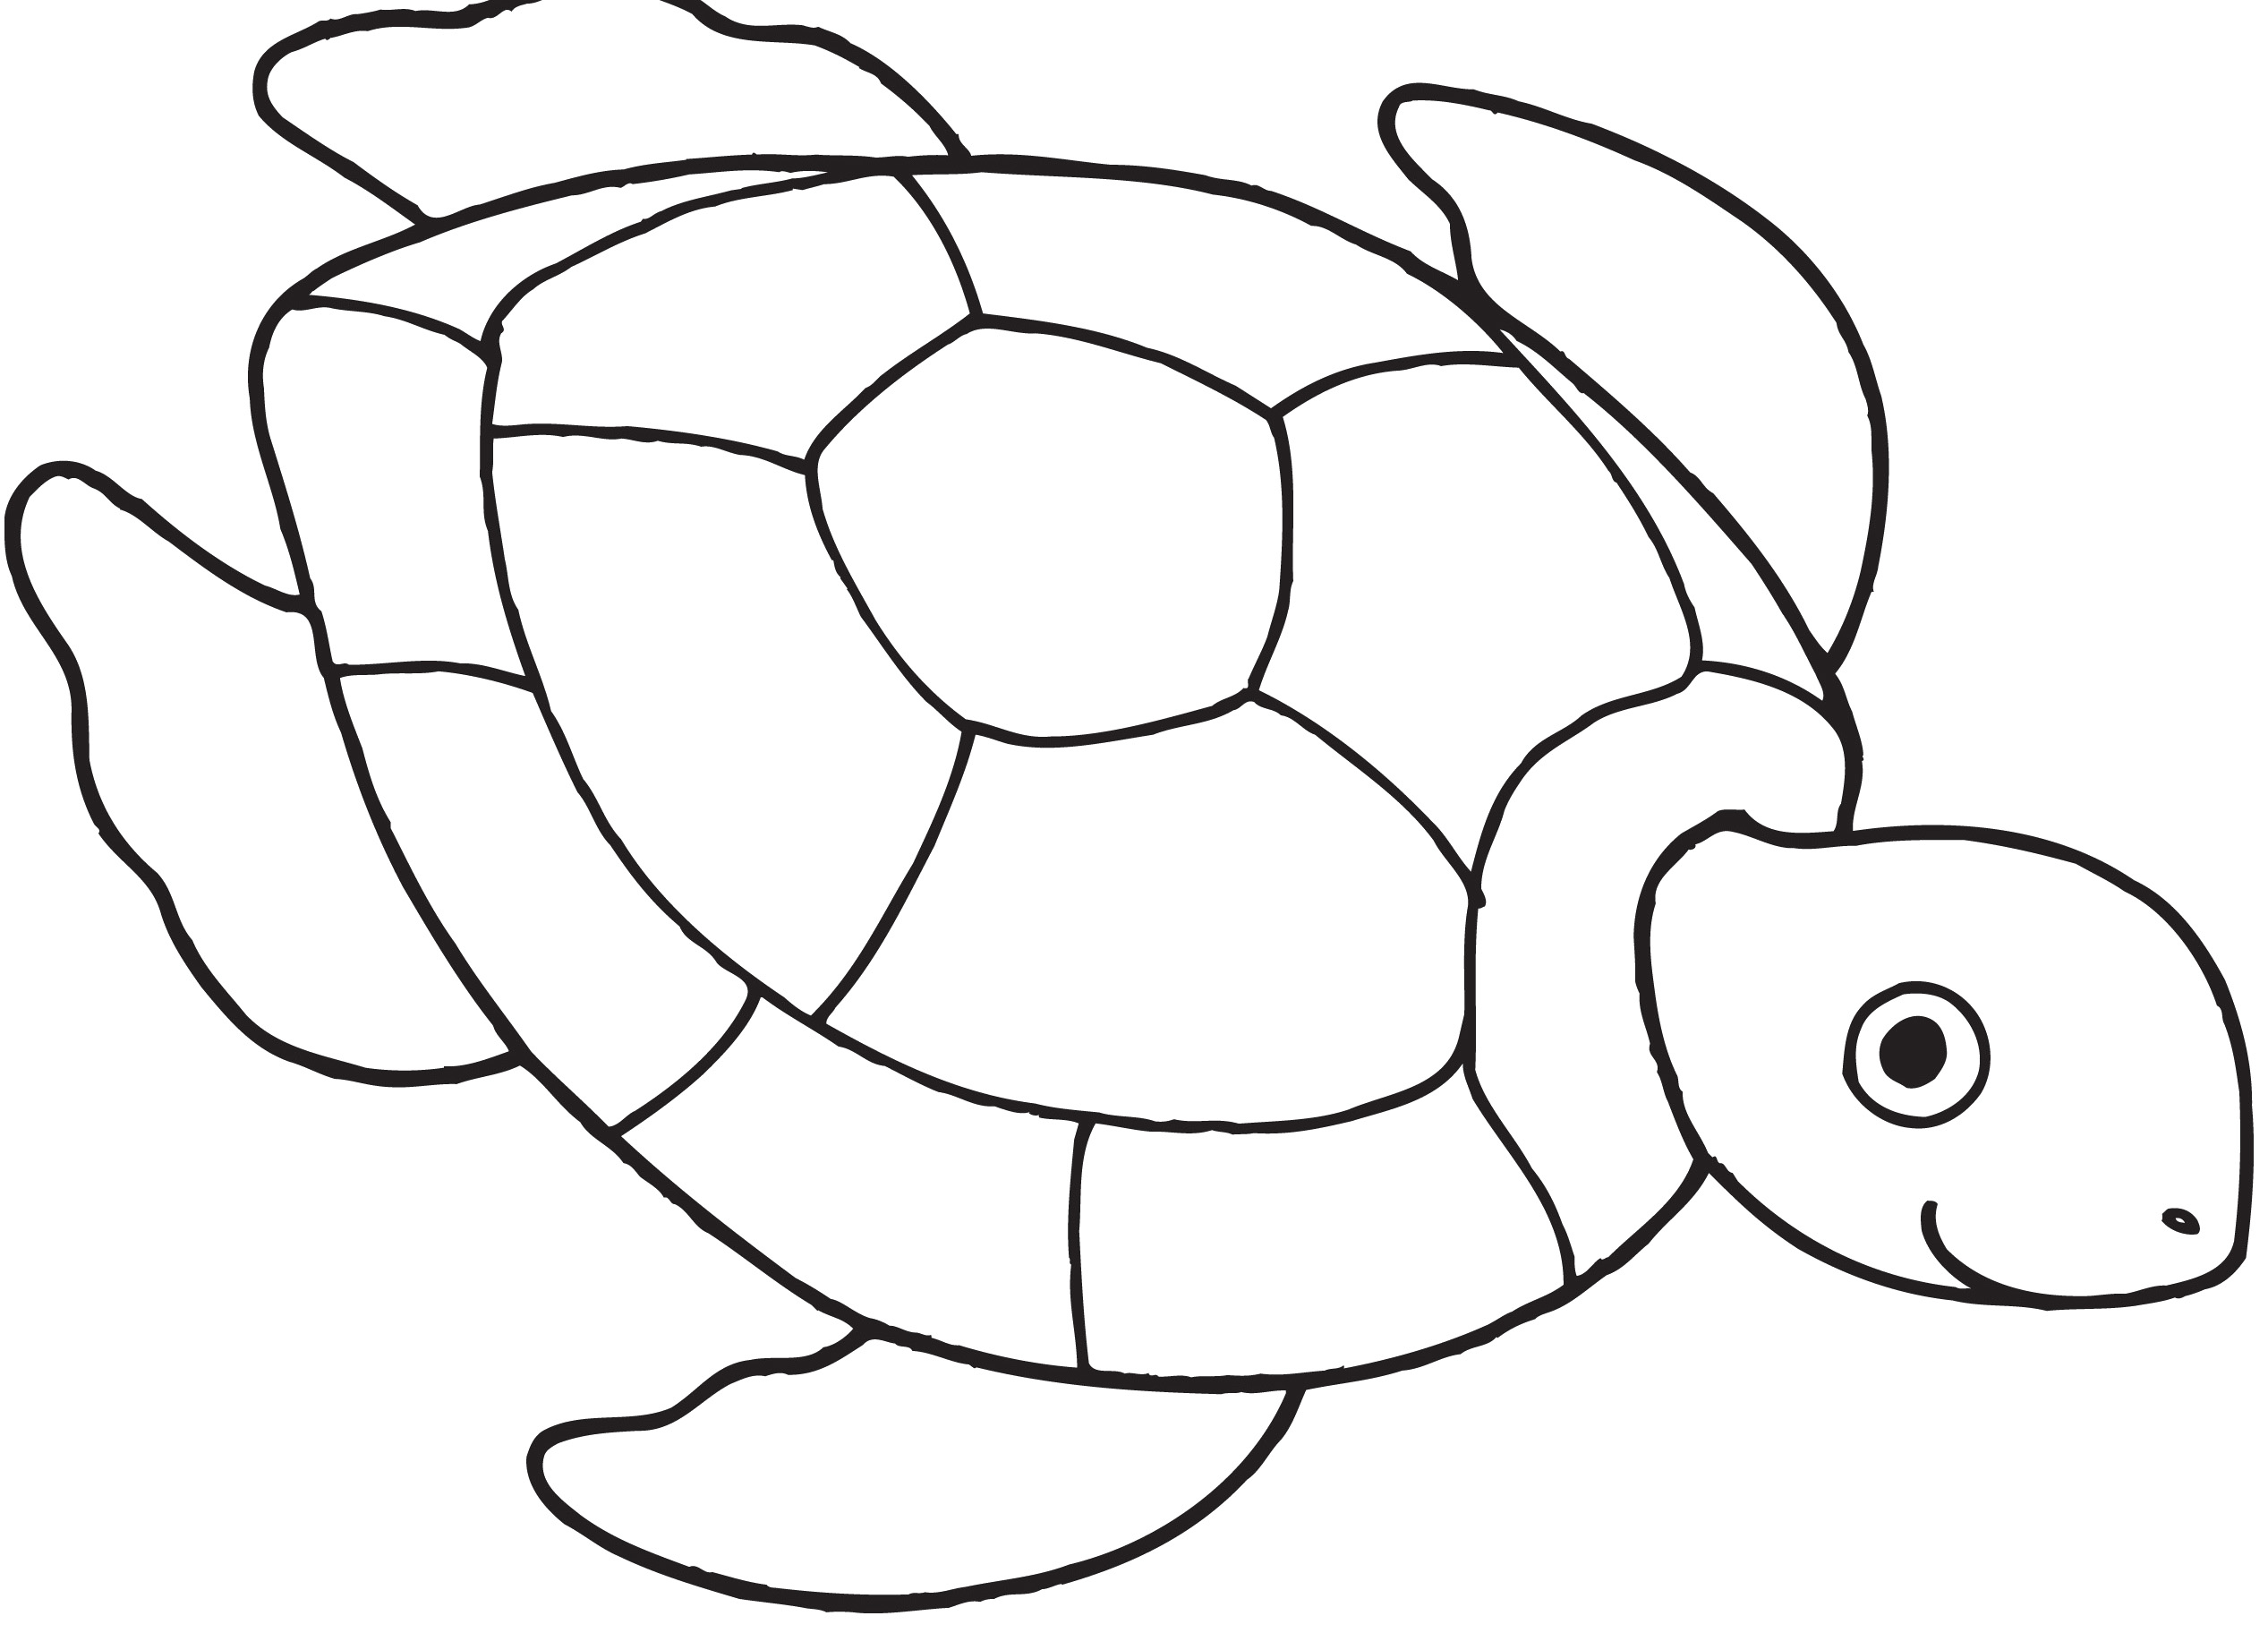 Sea turtle clipart black and white 6 » Clipart Station.